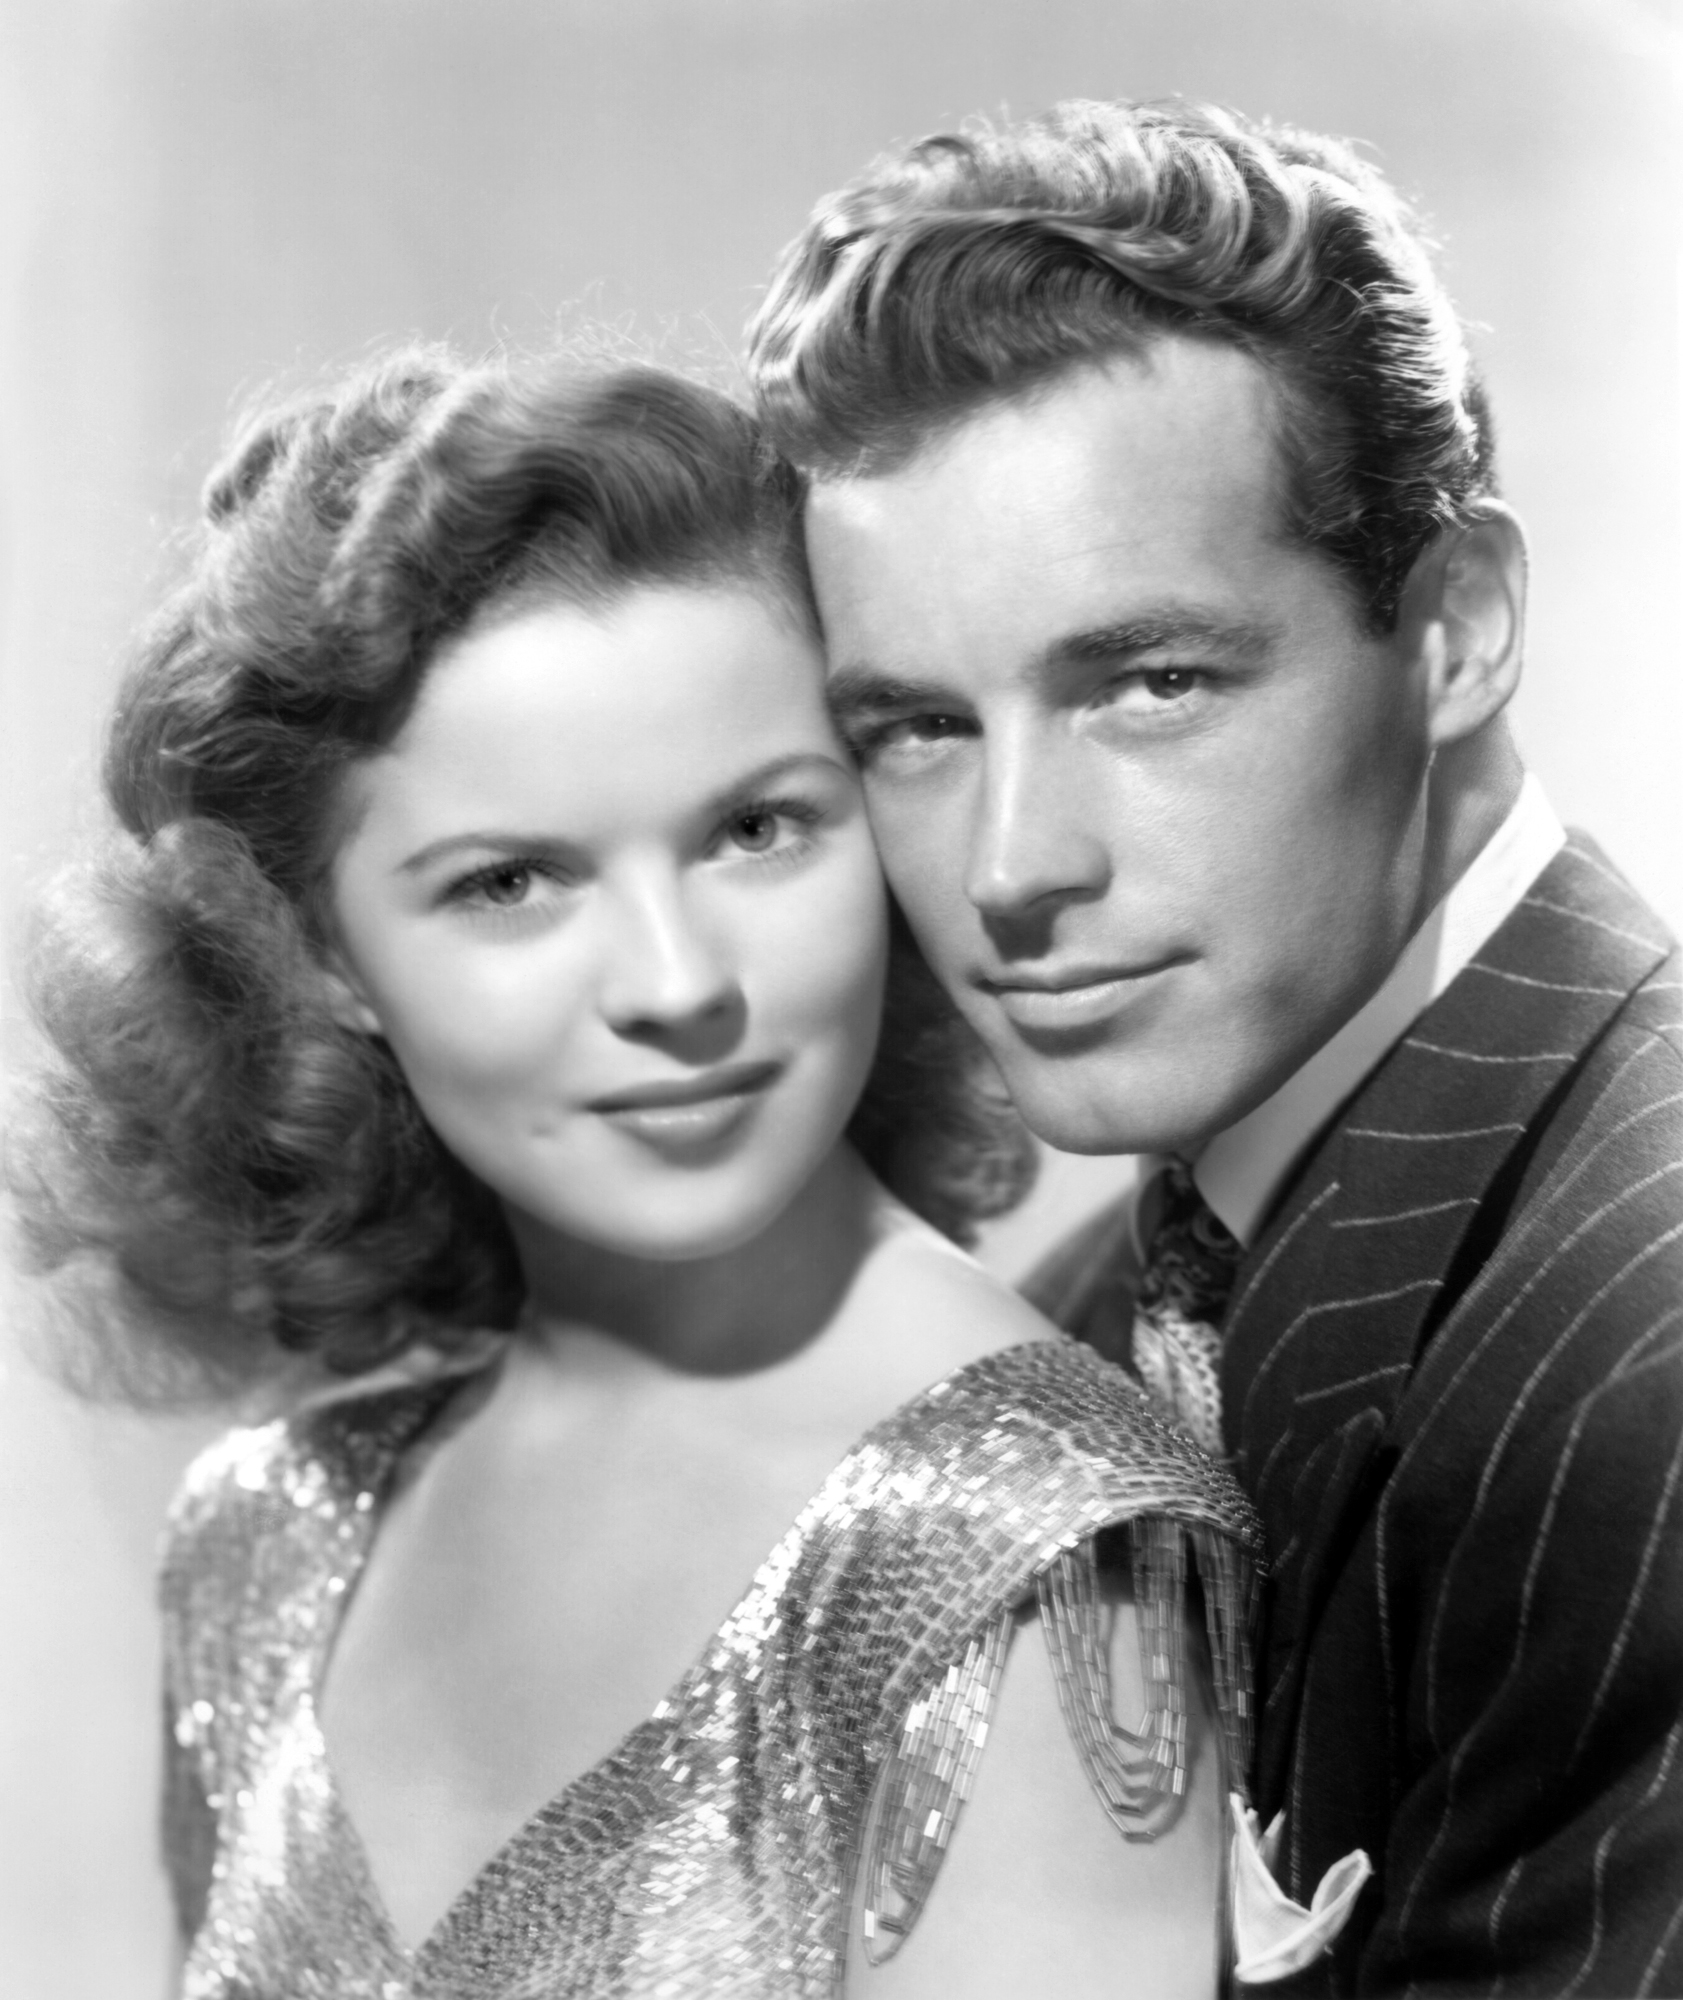 Guy Madison in Honeymoon With Shirley Temple